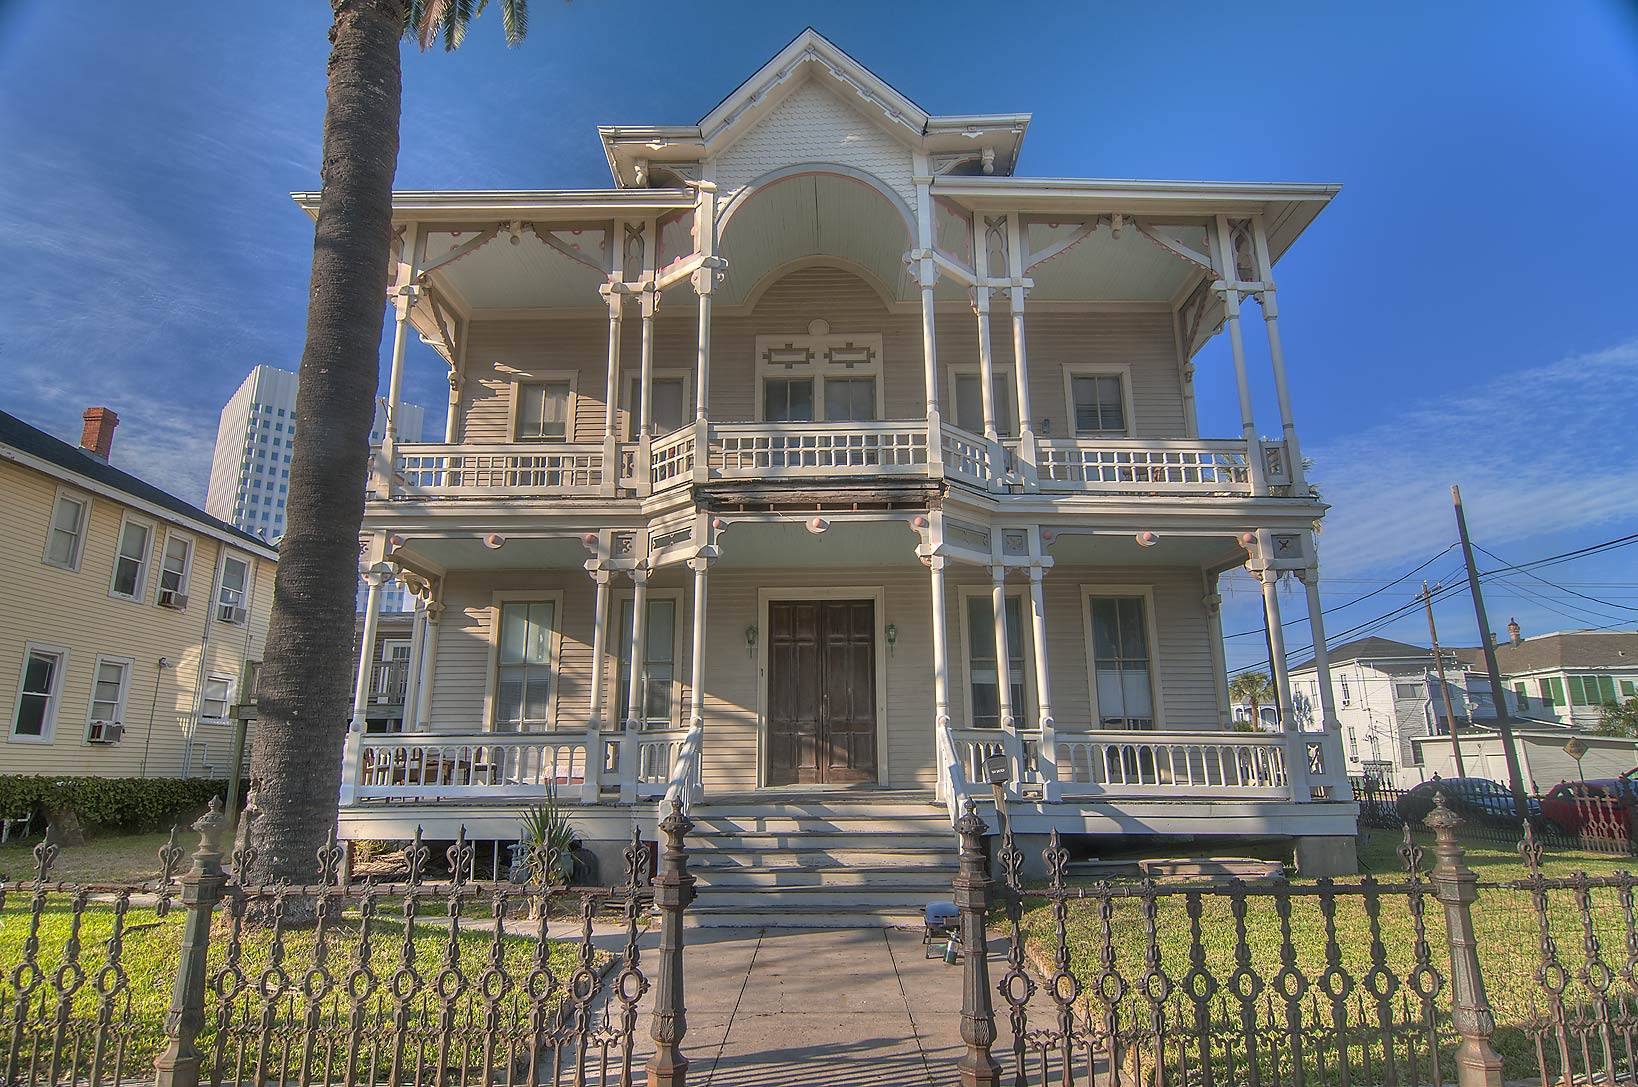 Thomas Goggans House (1886) at 1804 Church St. in...Historic District. Galveston, Texas